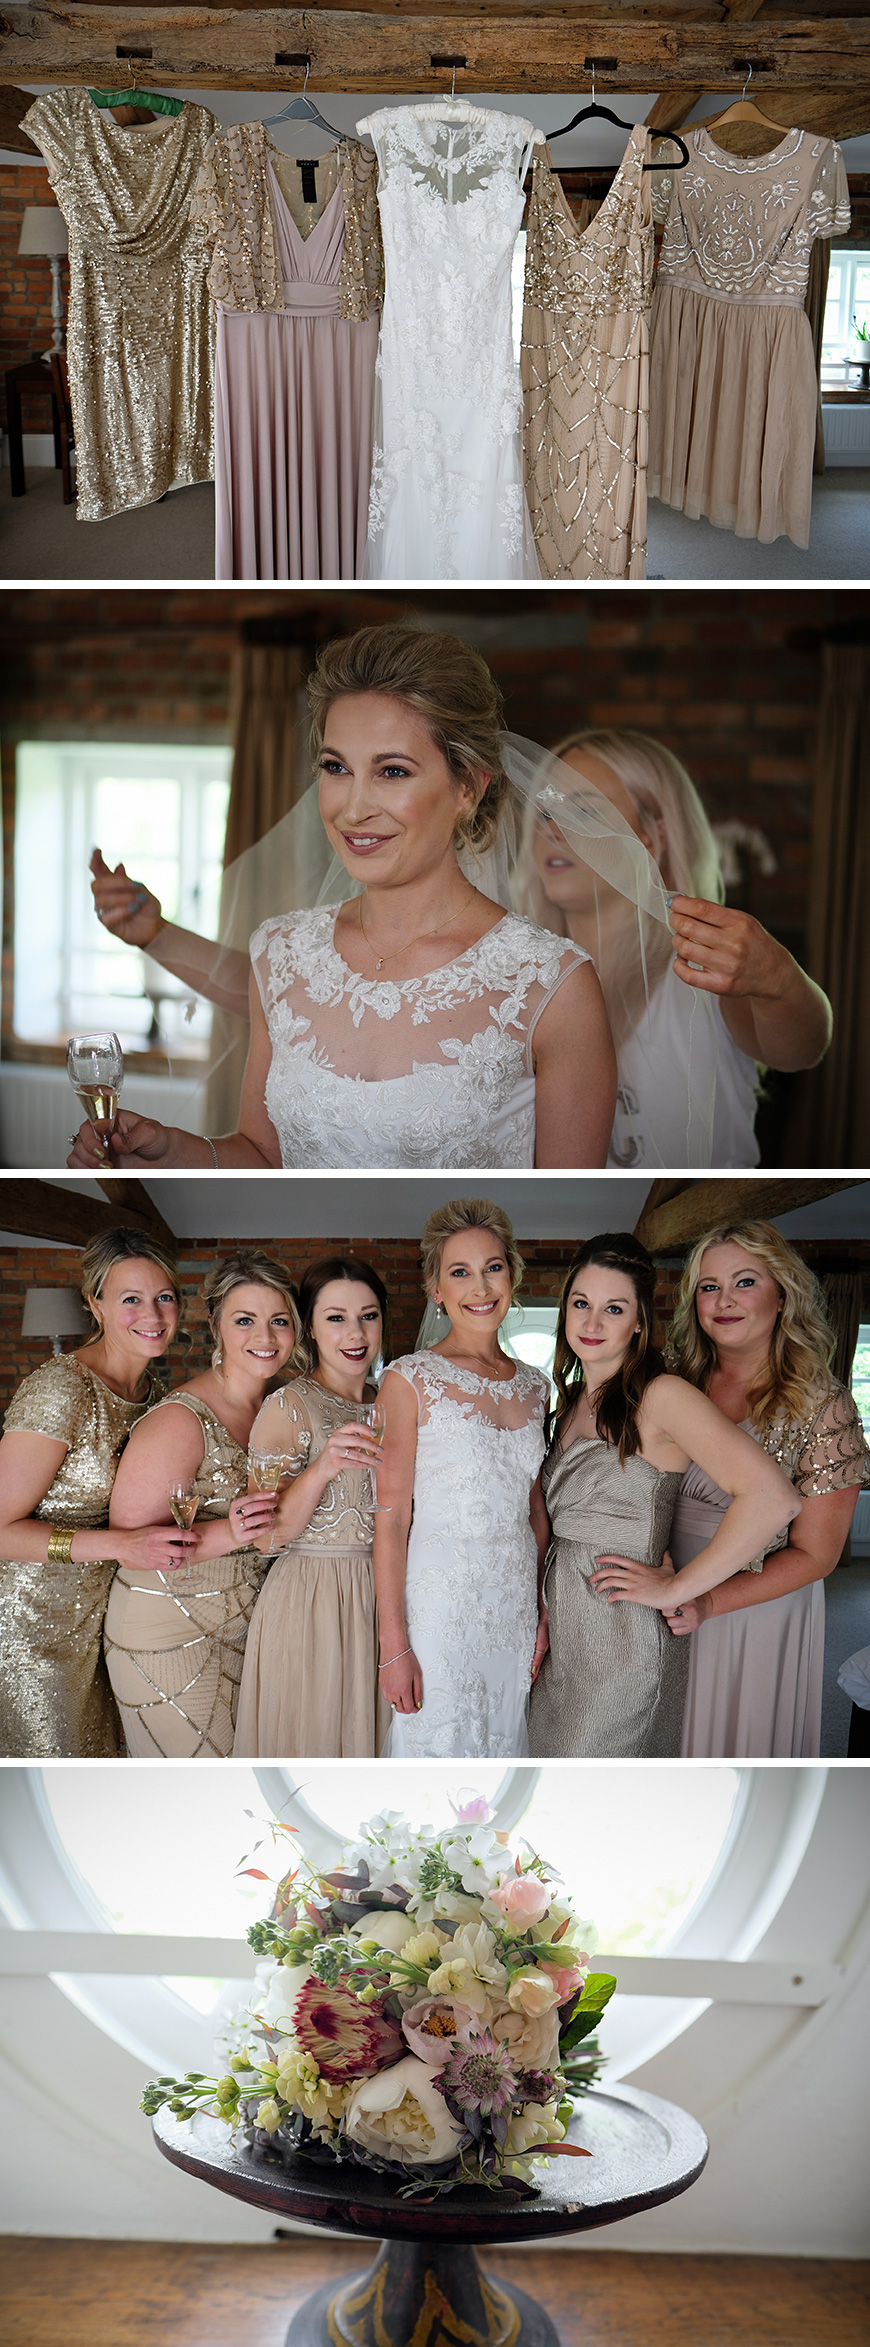 Real Wedding - Alice and Joshua's Elegant Country Wedding at Wasing Park | CHWV